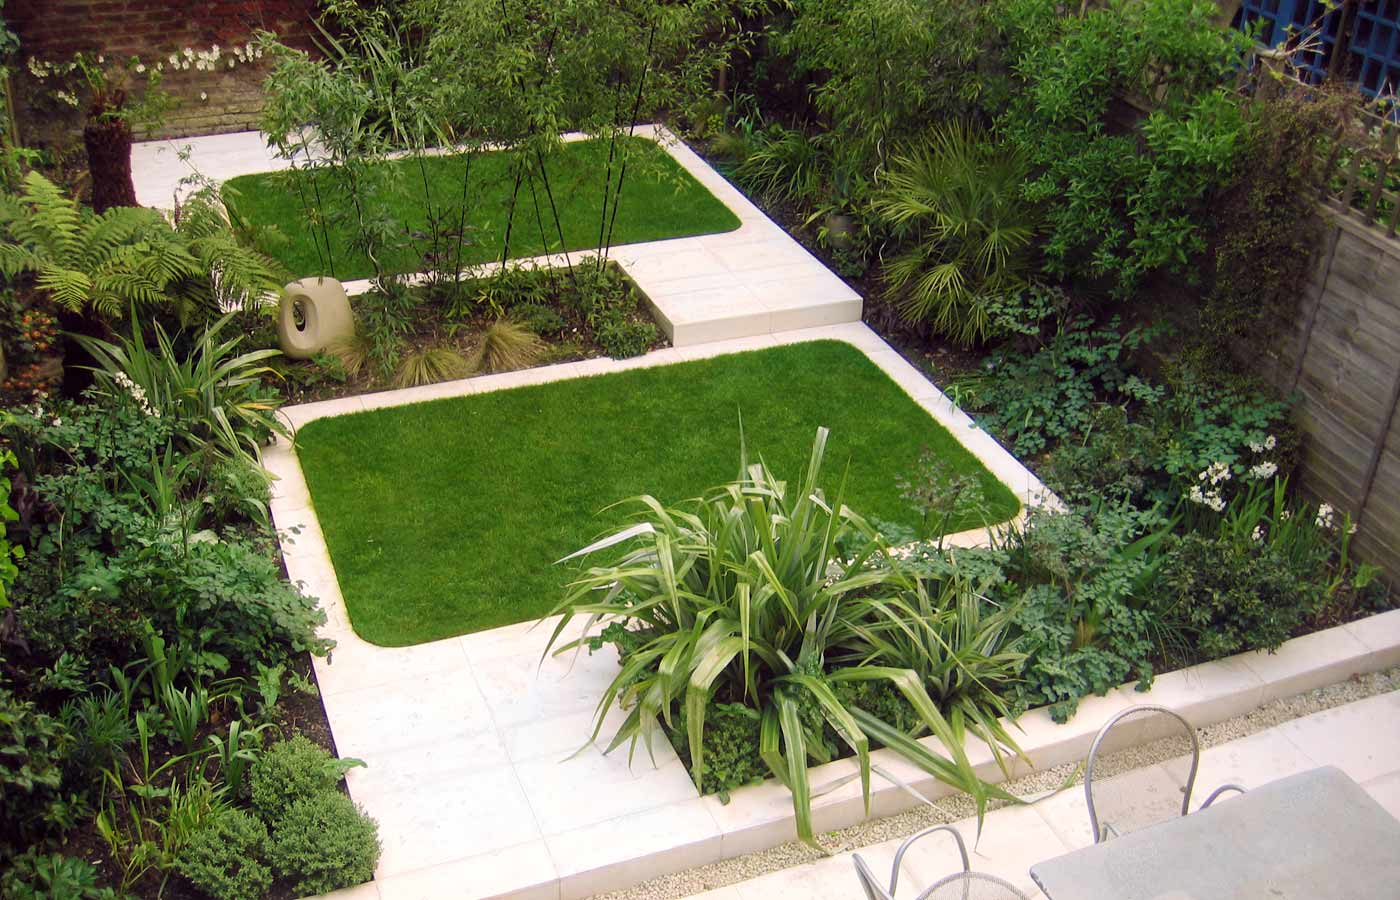 Modern town garden design north facing garden design for Garden designs images pictures